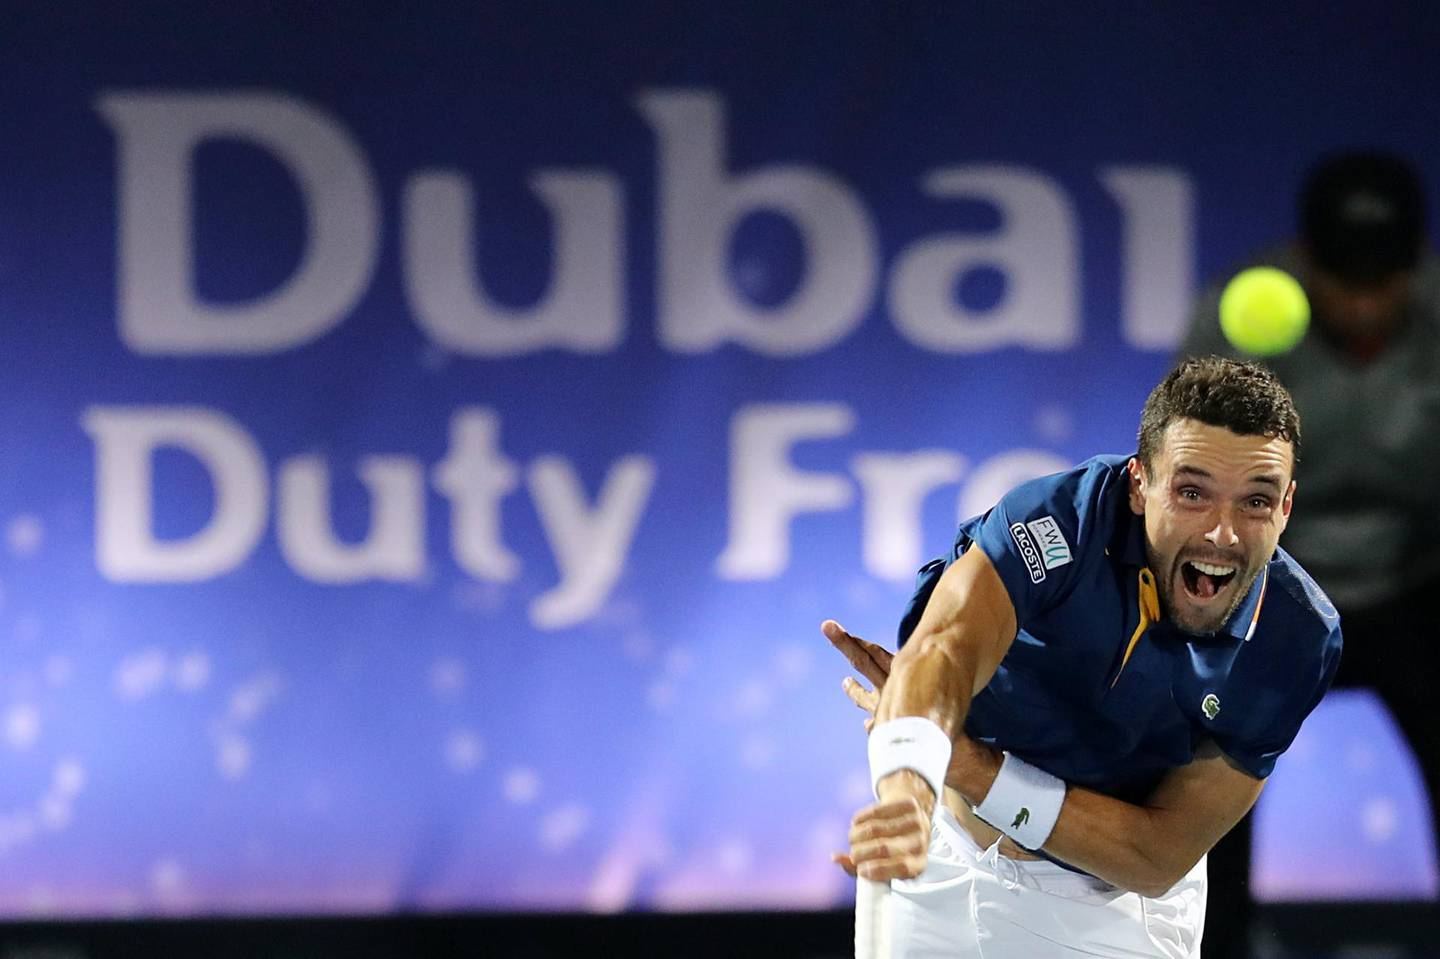 epa06577367 Roberto Bautista Agut of Spain in actoin against Lucas Pouille of France in the Men's Singles Final match of the ATP Dubai Duty Free Tennis Championships in Dubai, United Arab Emirates, 03 March 2018.  EPA/MAHMOUD KHALED